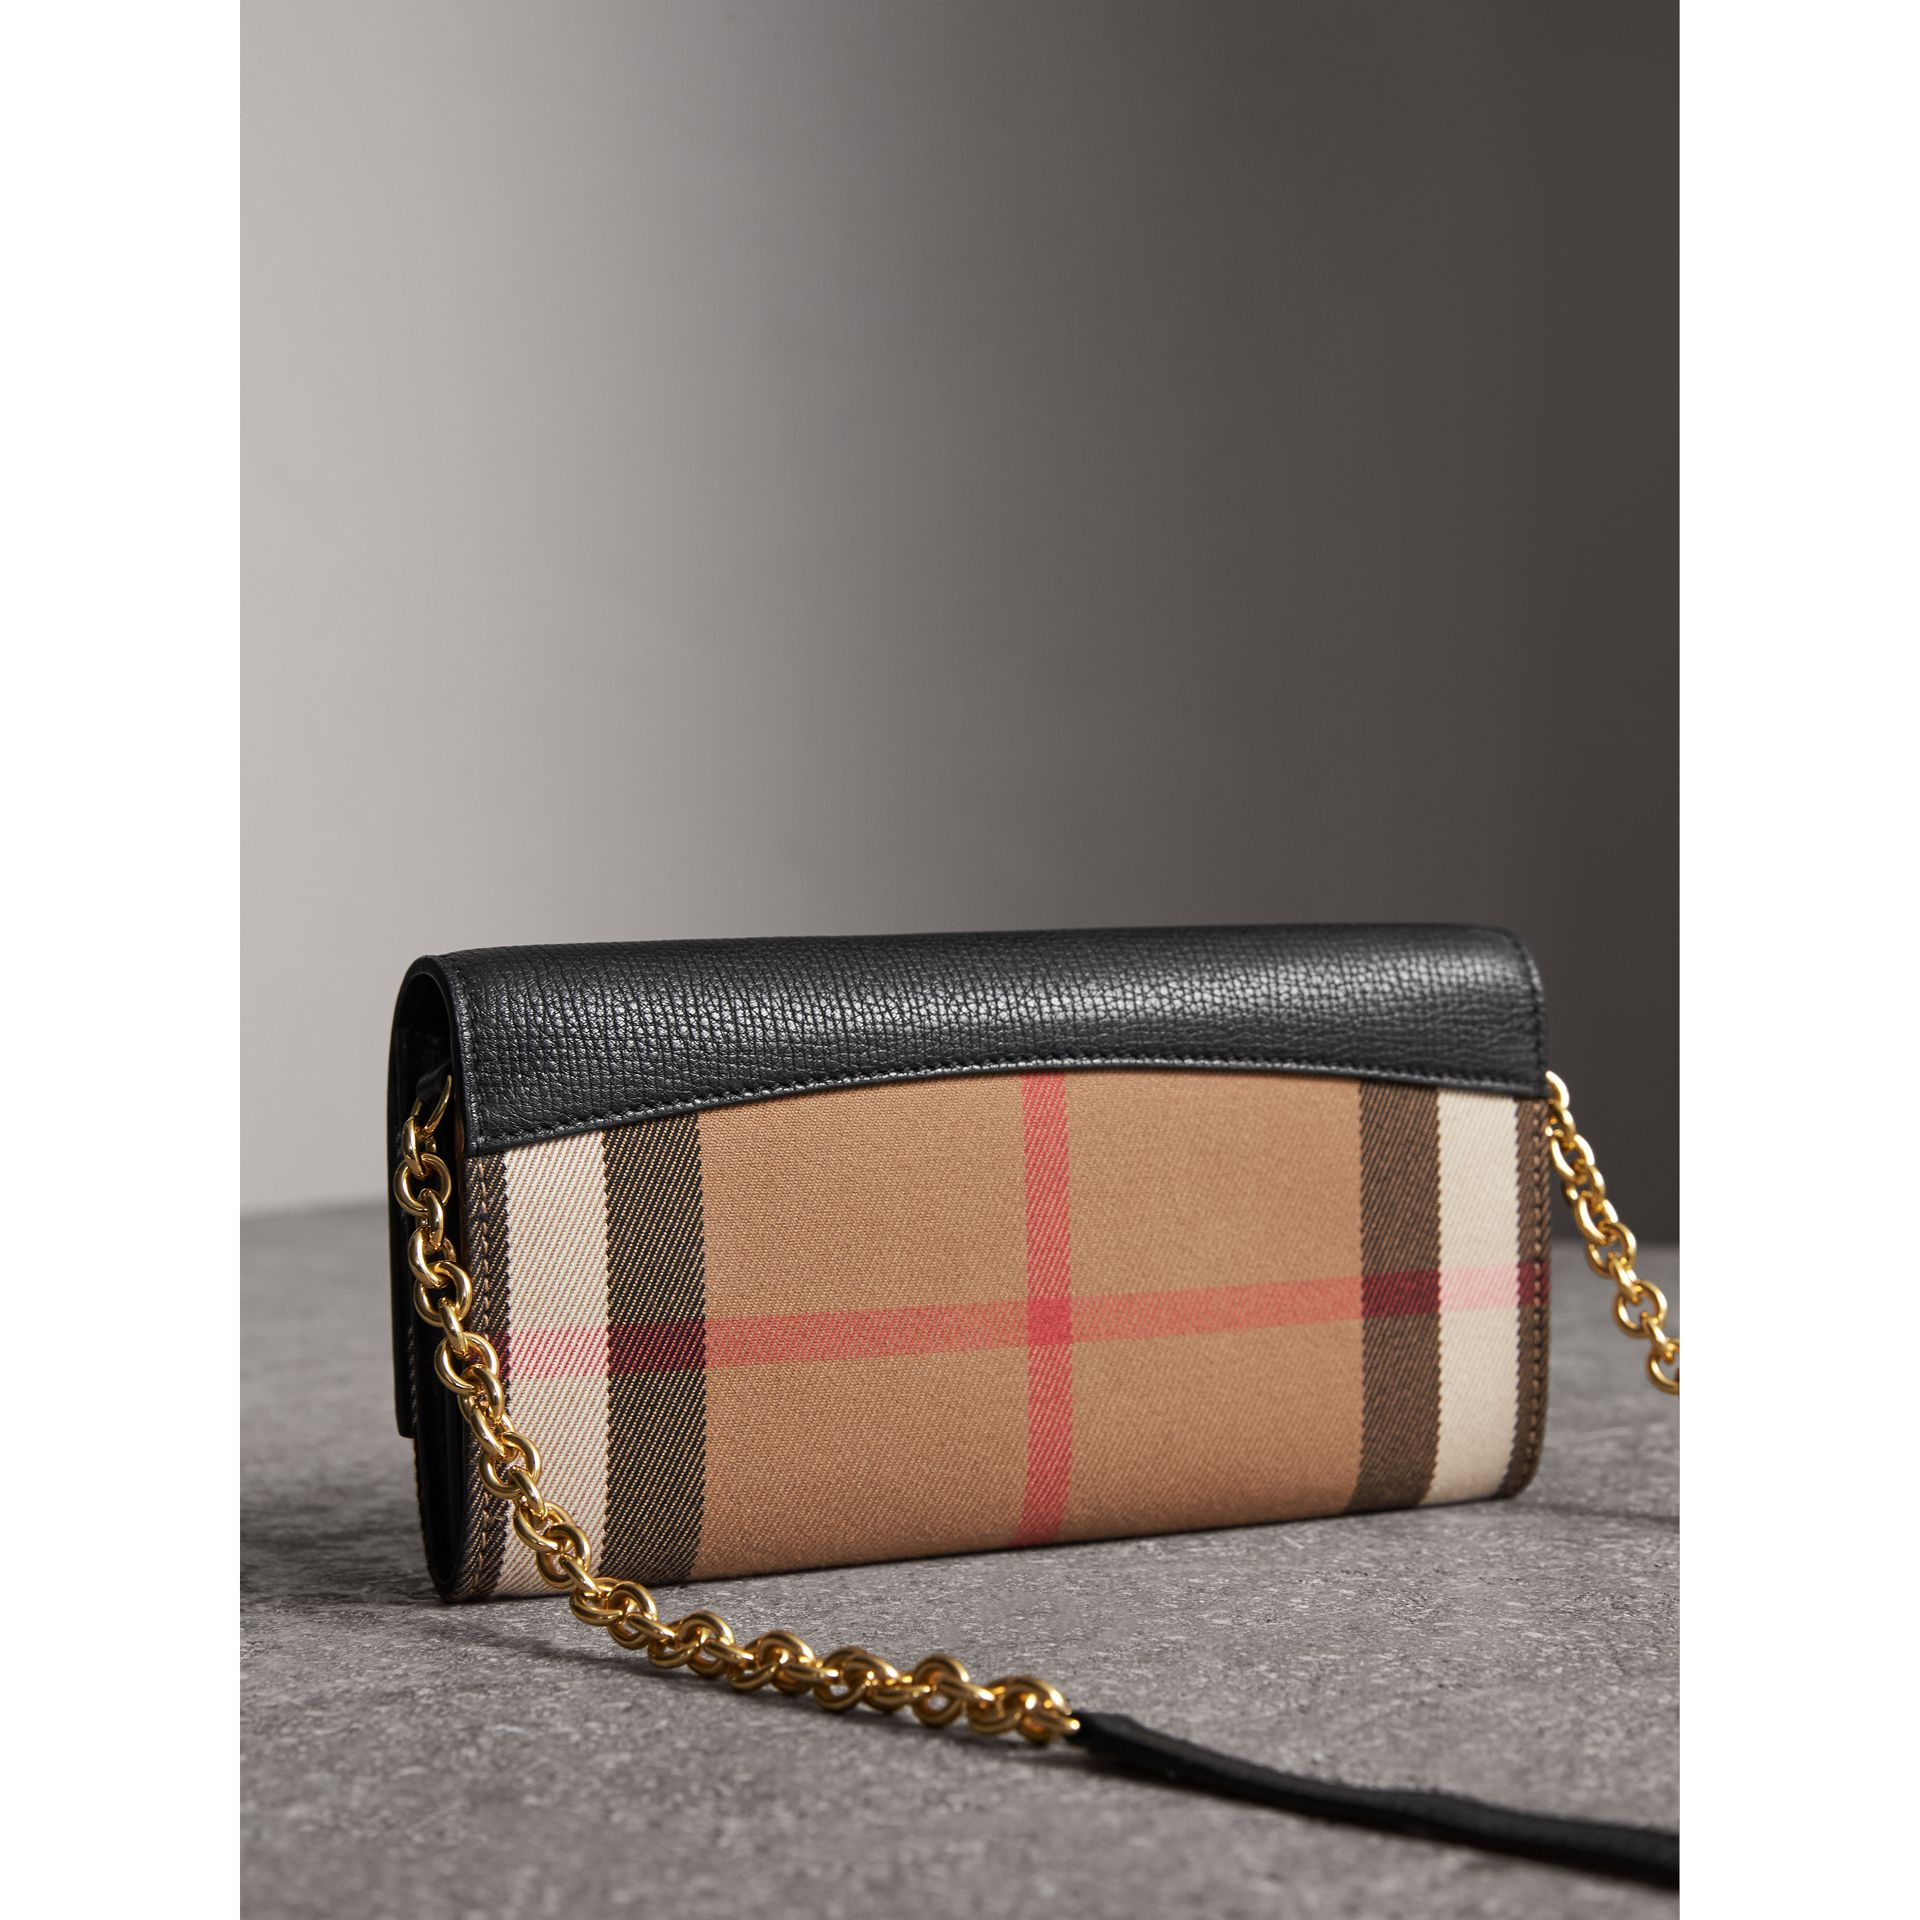 House Check and Leather Wallet with Chain in Black - Women | Burberry Hong Kong - gallery image 5